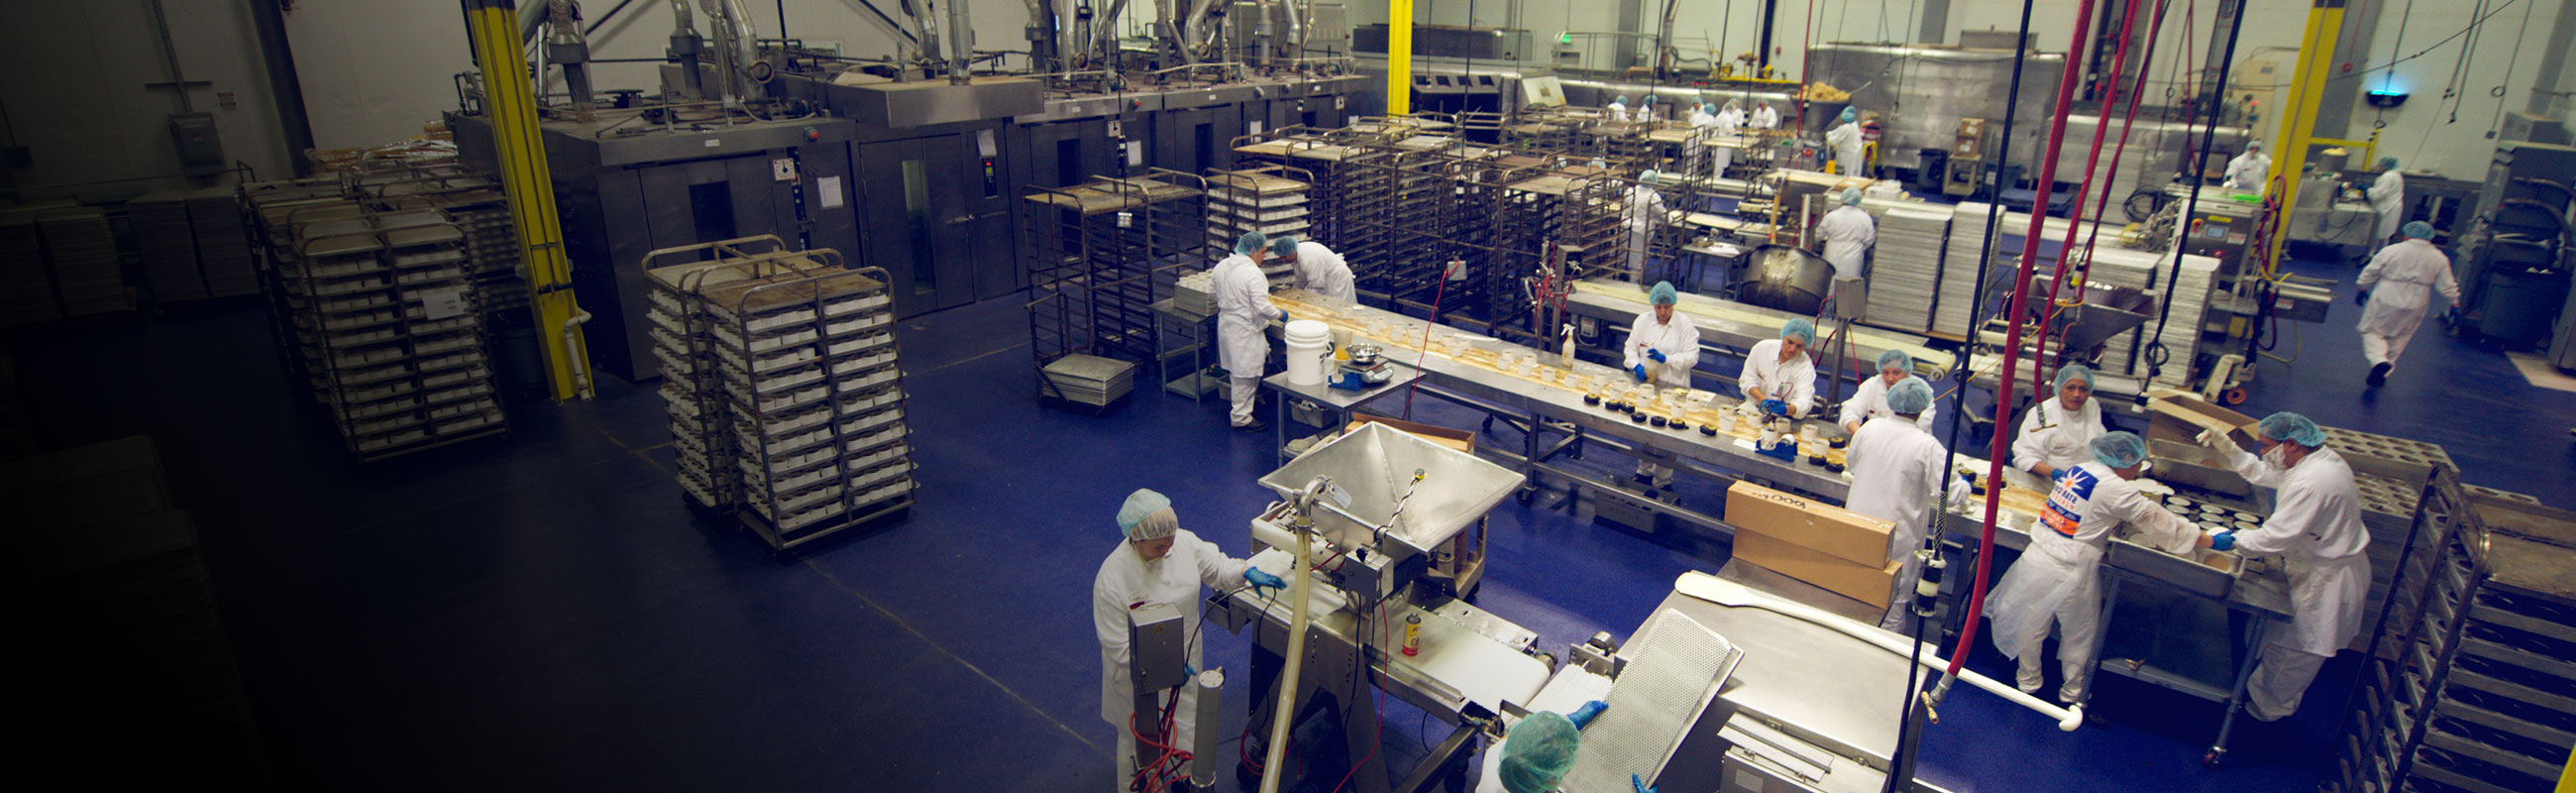 Bakery industry shrink packaging